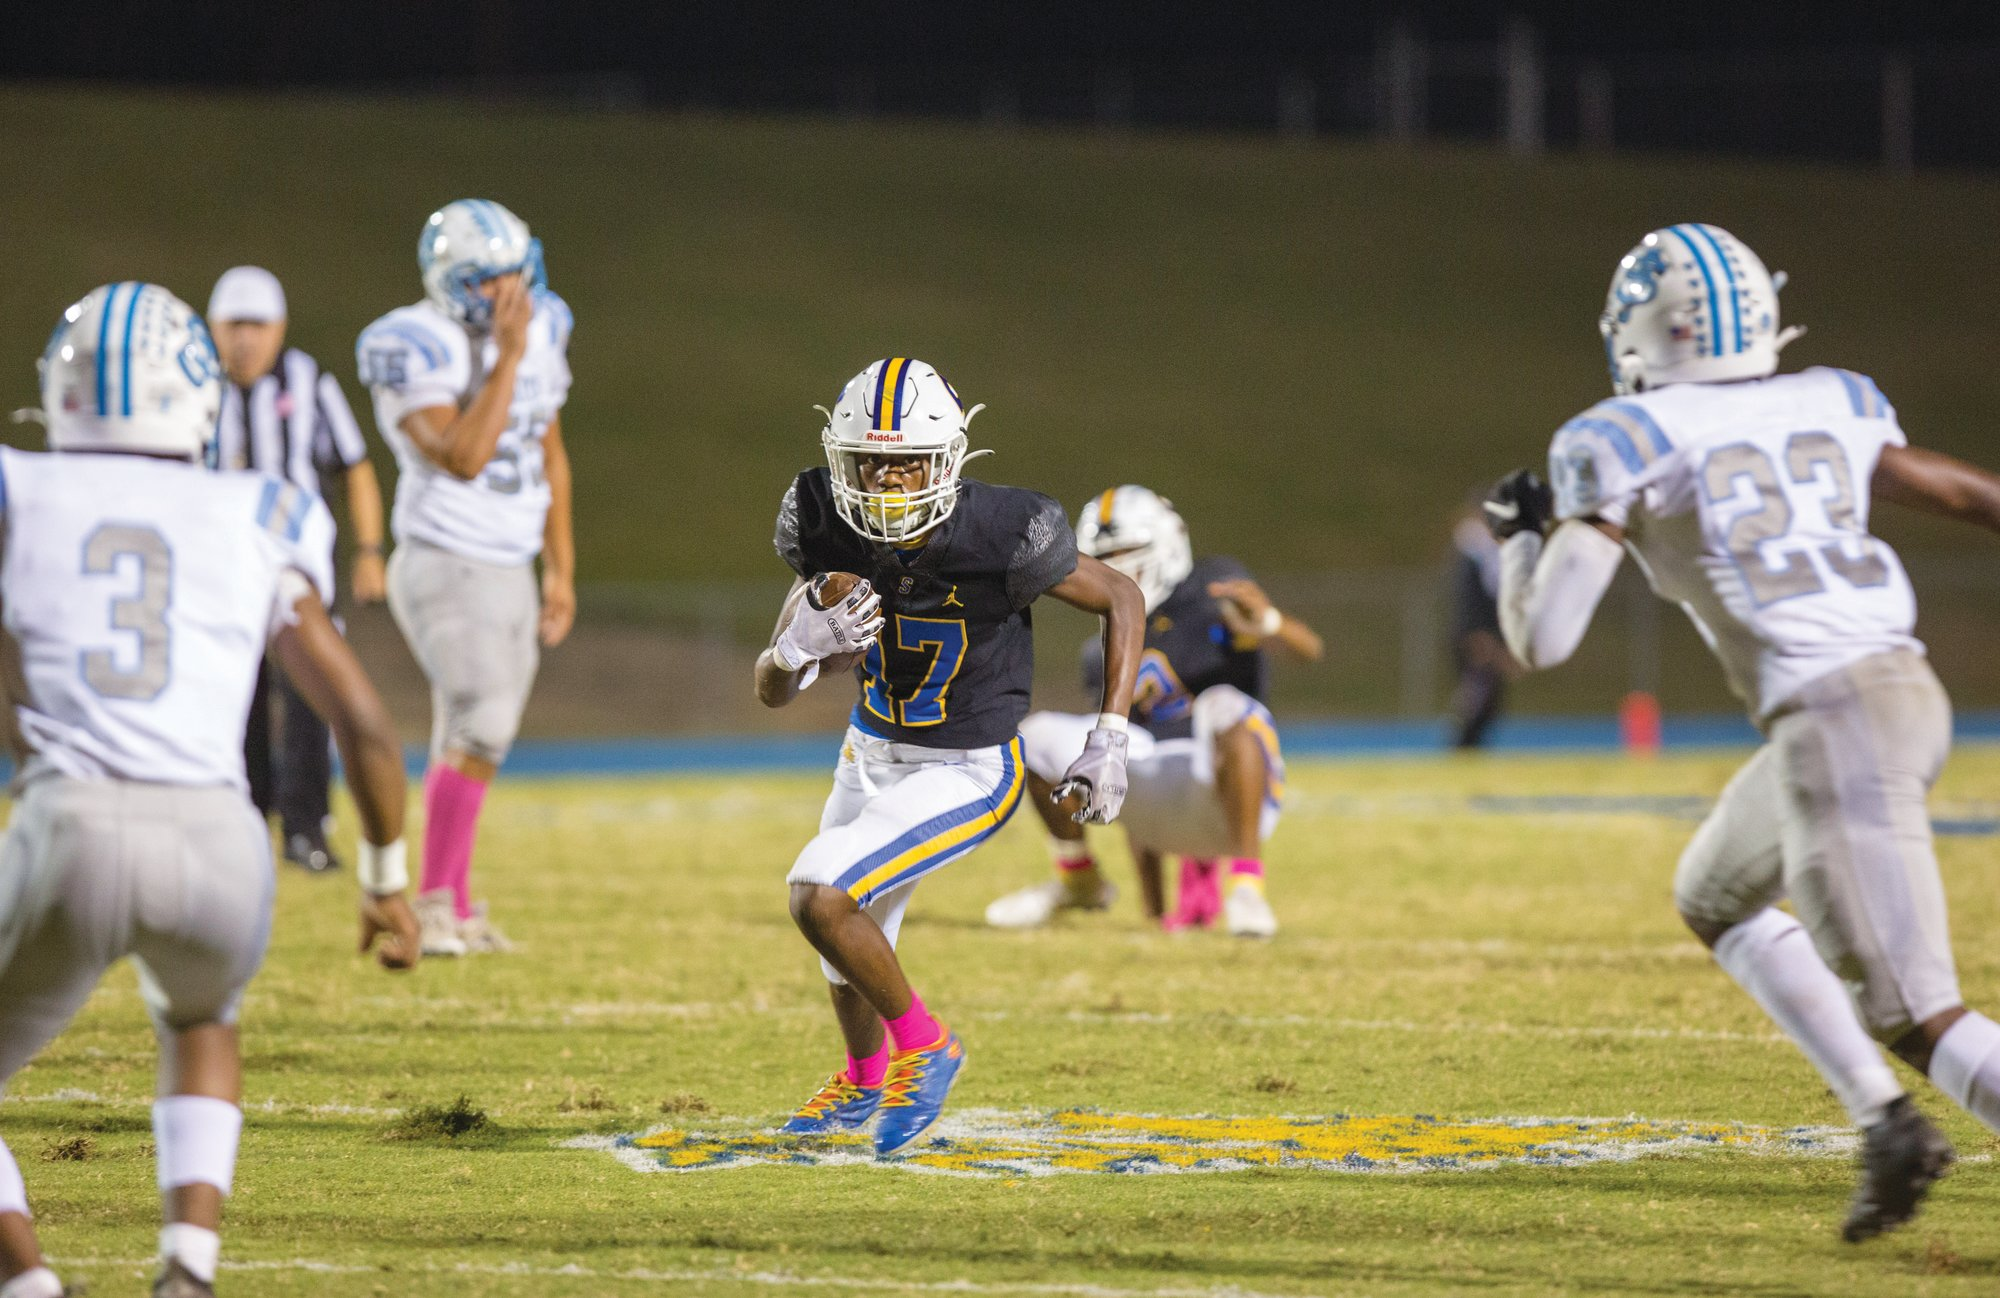 Sumter's Genesis Johnson (17) and the Gamecocks beat St. James 24-7 on Friday.